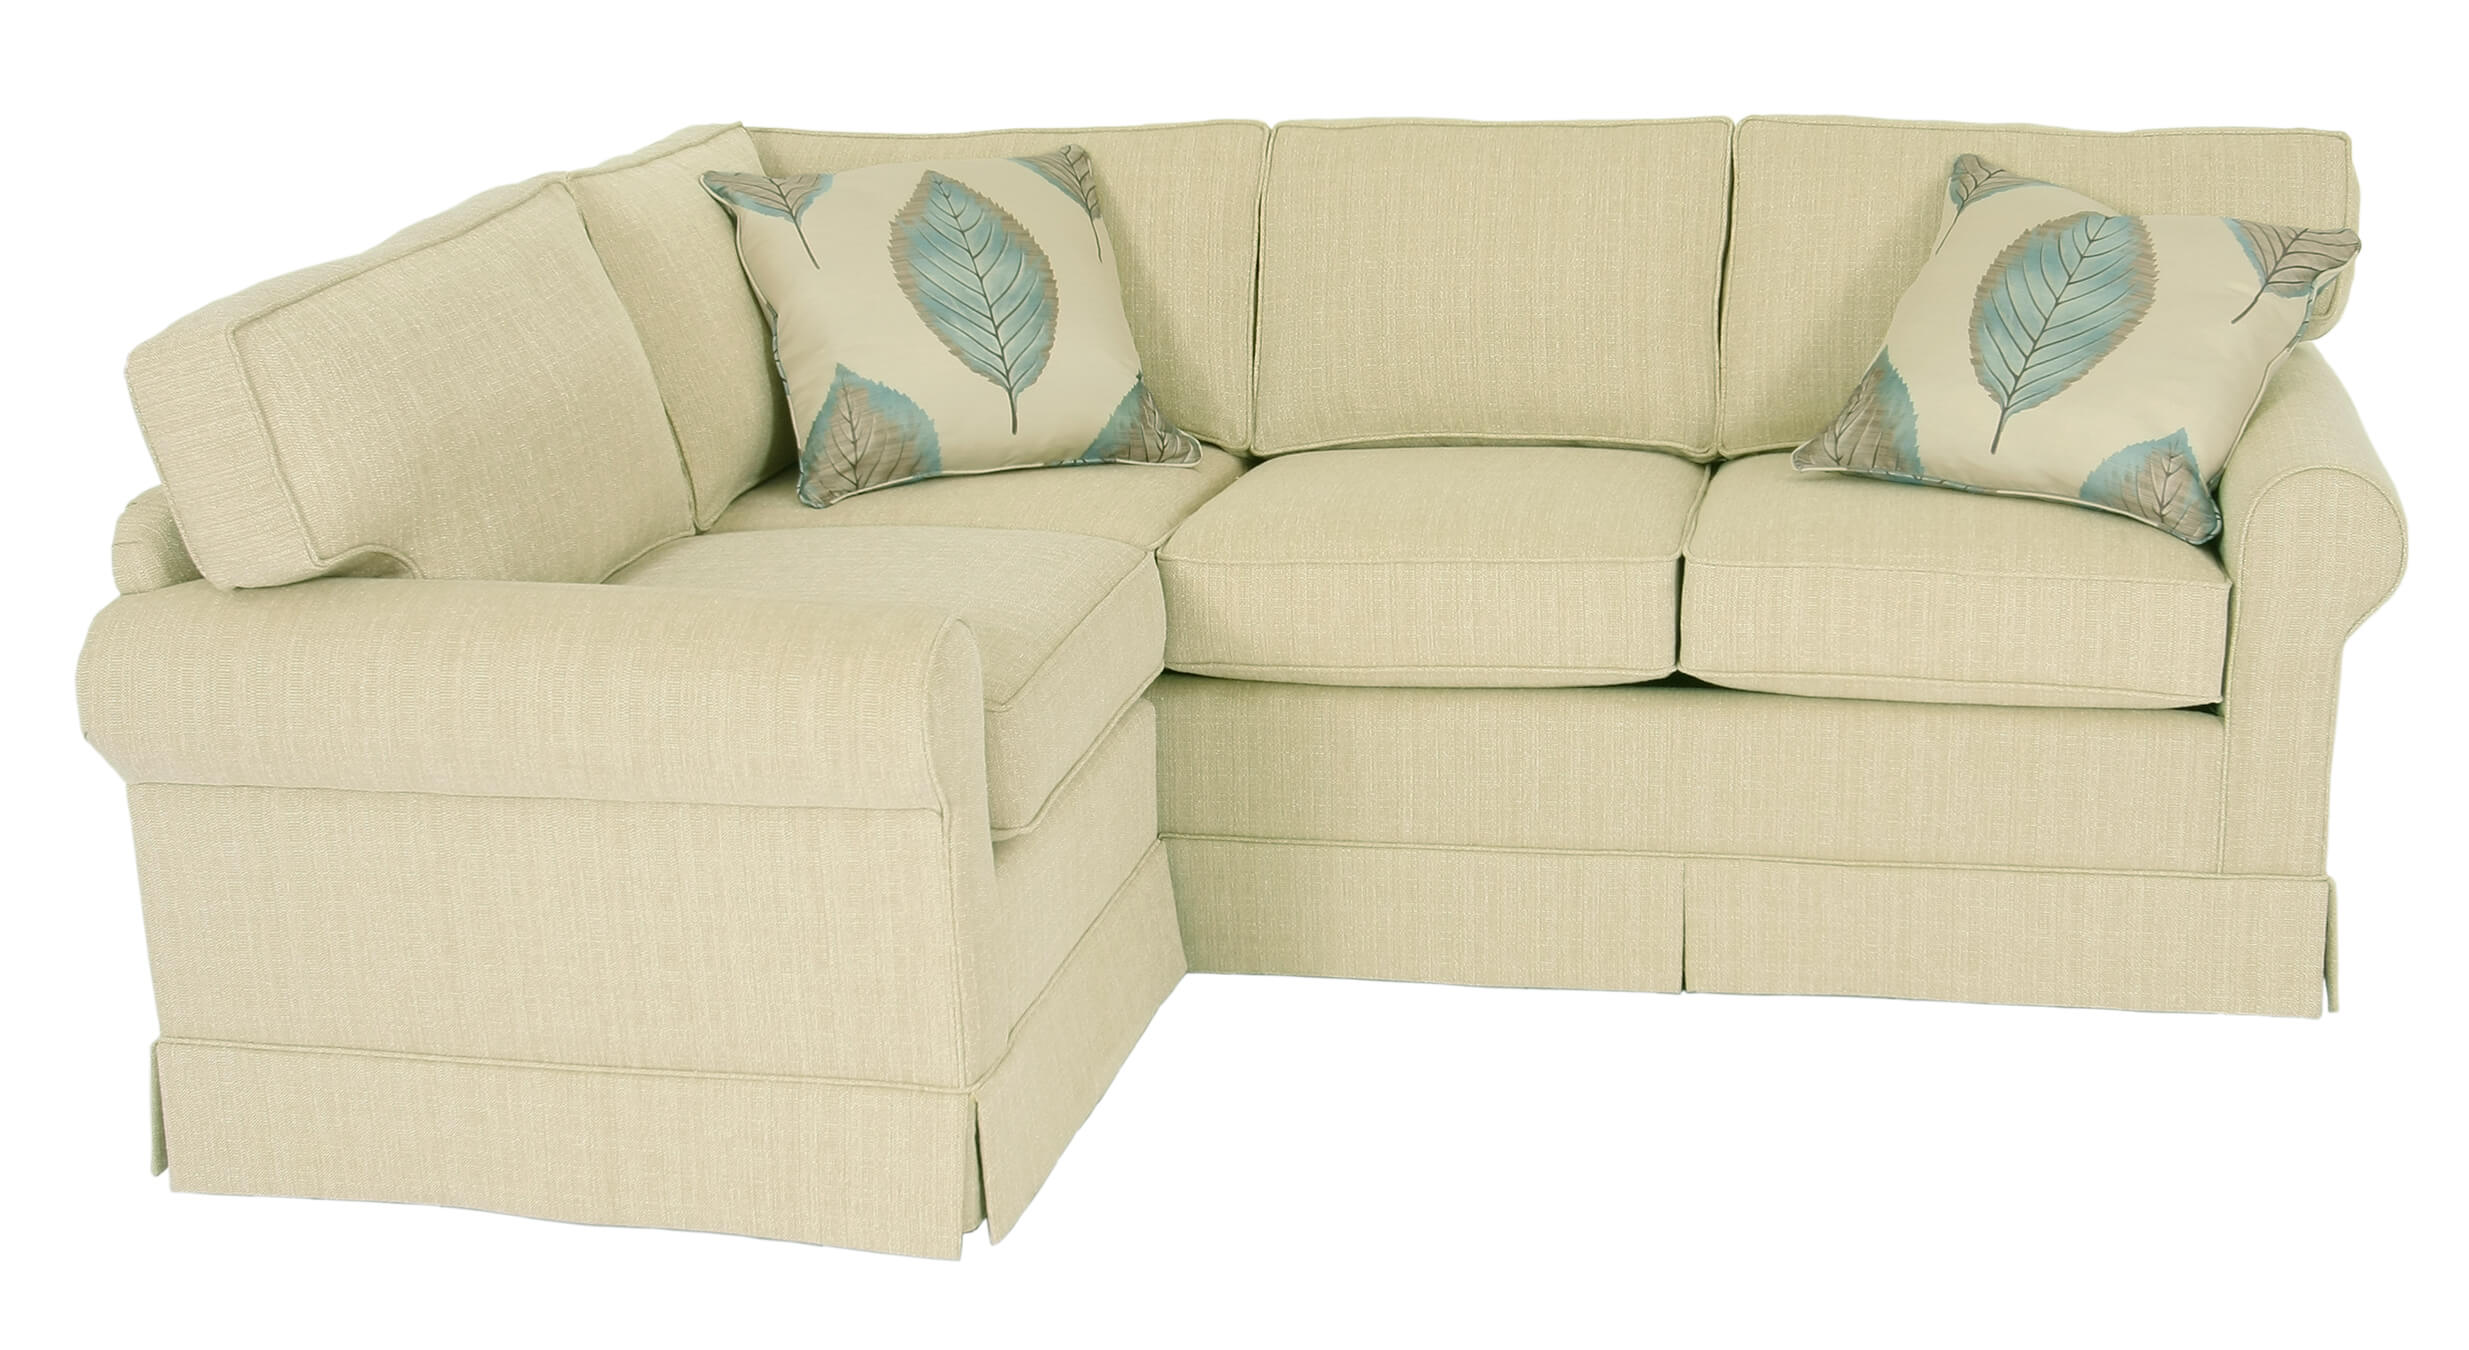 Copley Square sectional_Simple Chic